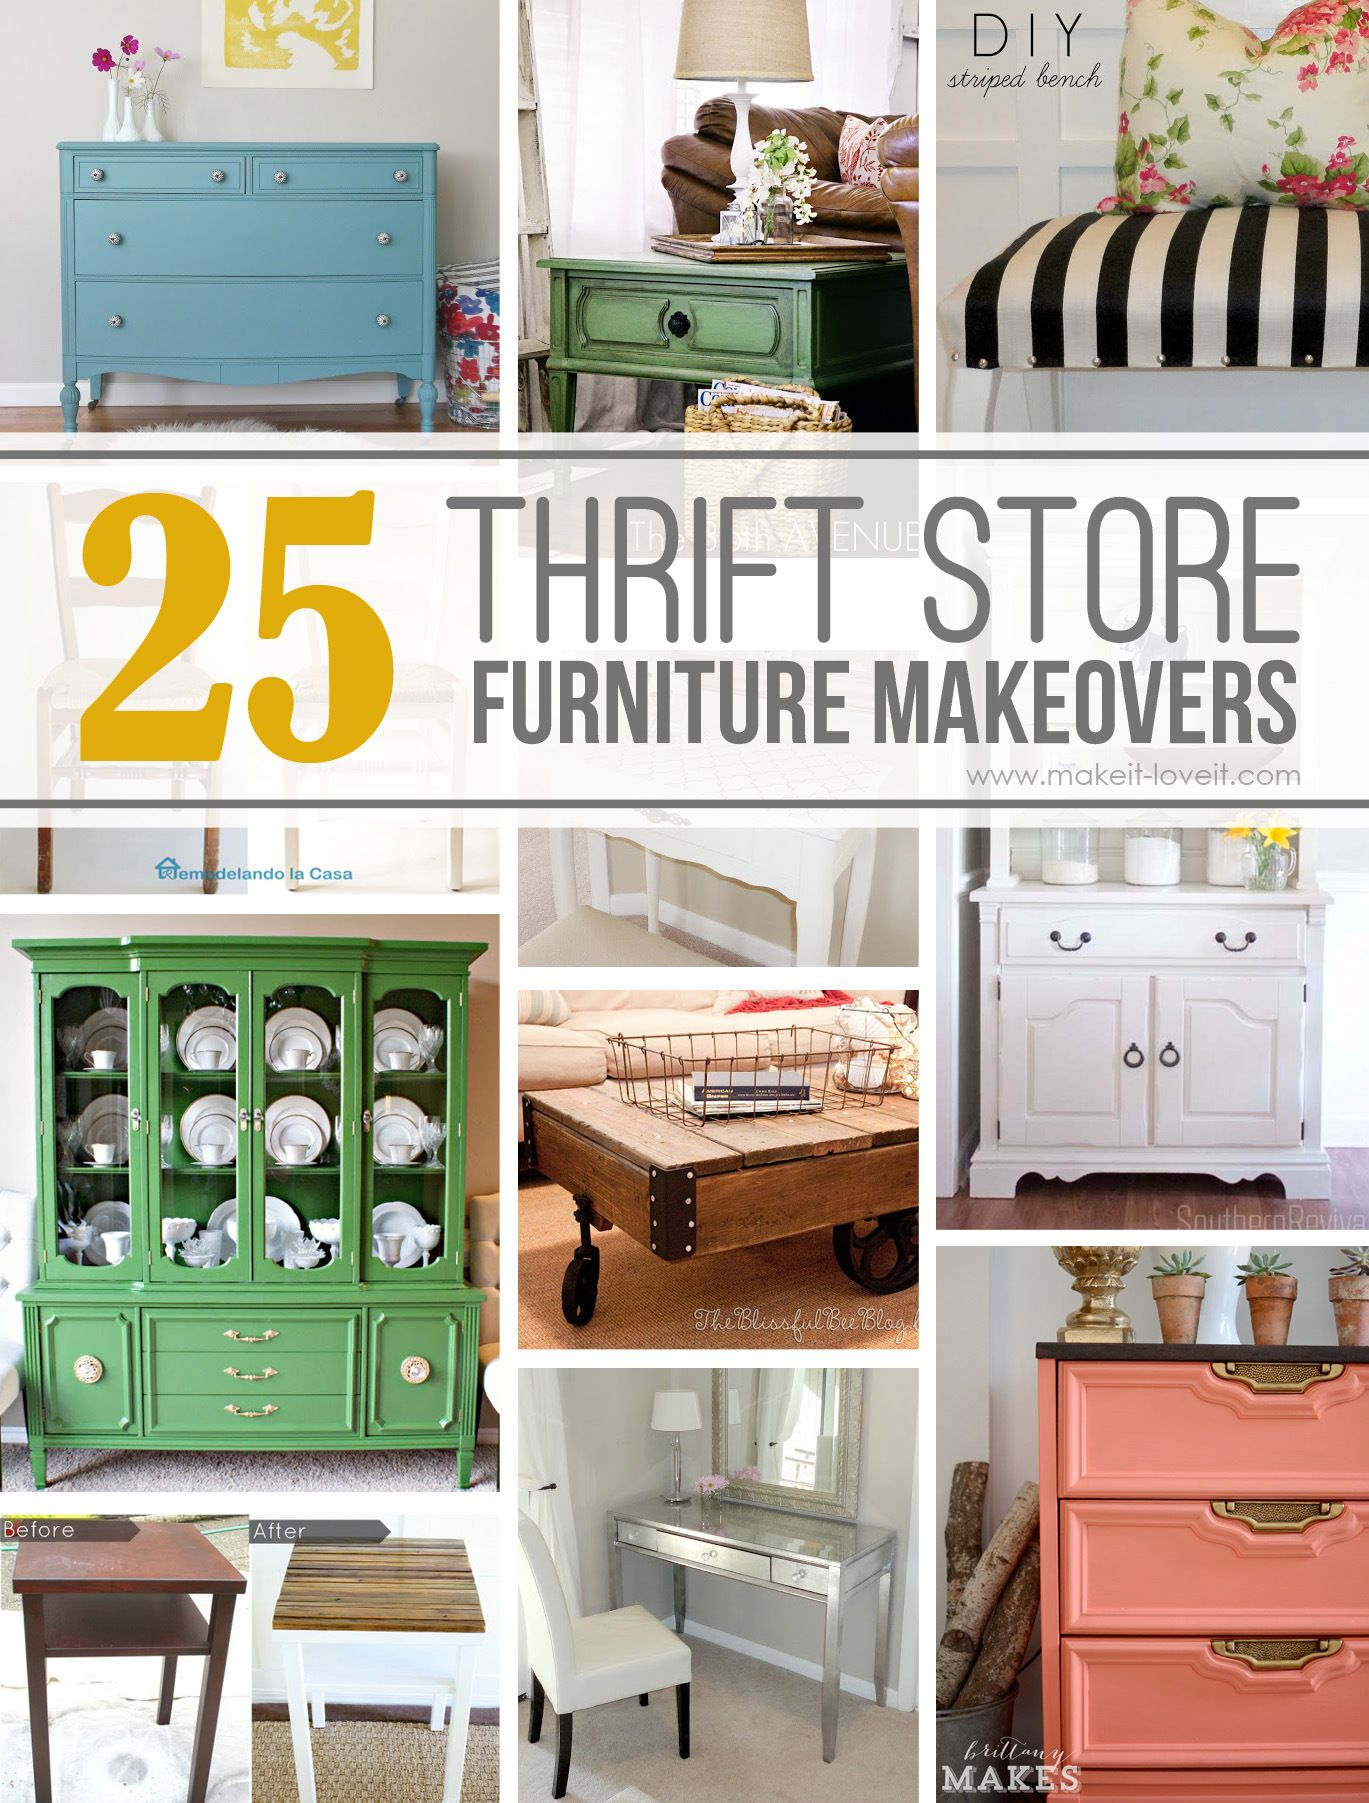 25 amazing thrift store furniture makeovers via make it and love it hacks tips tricks - Furniture advertising ideas ...